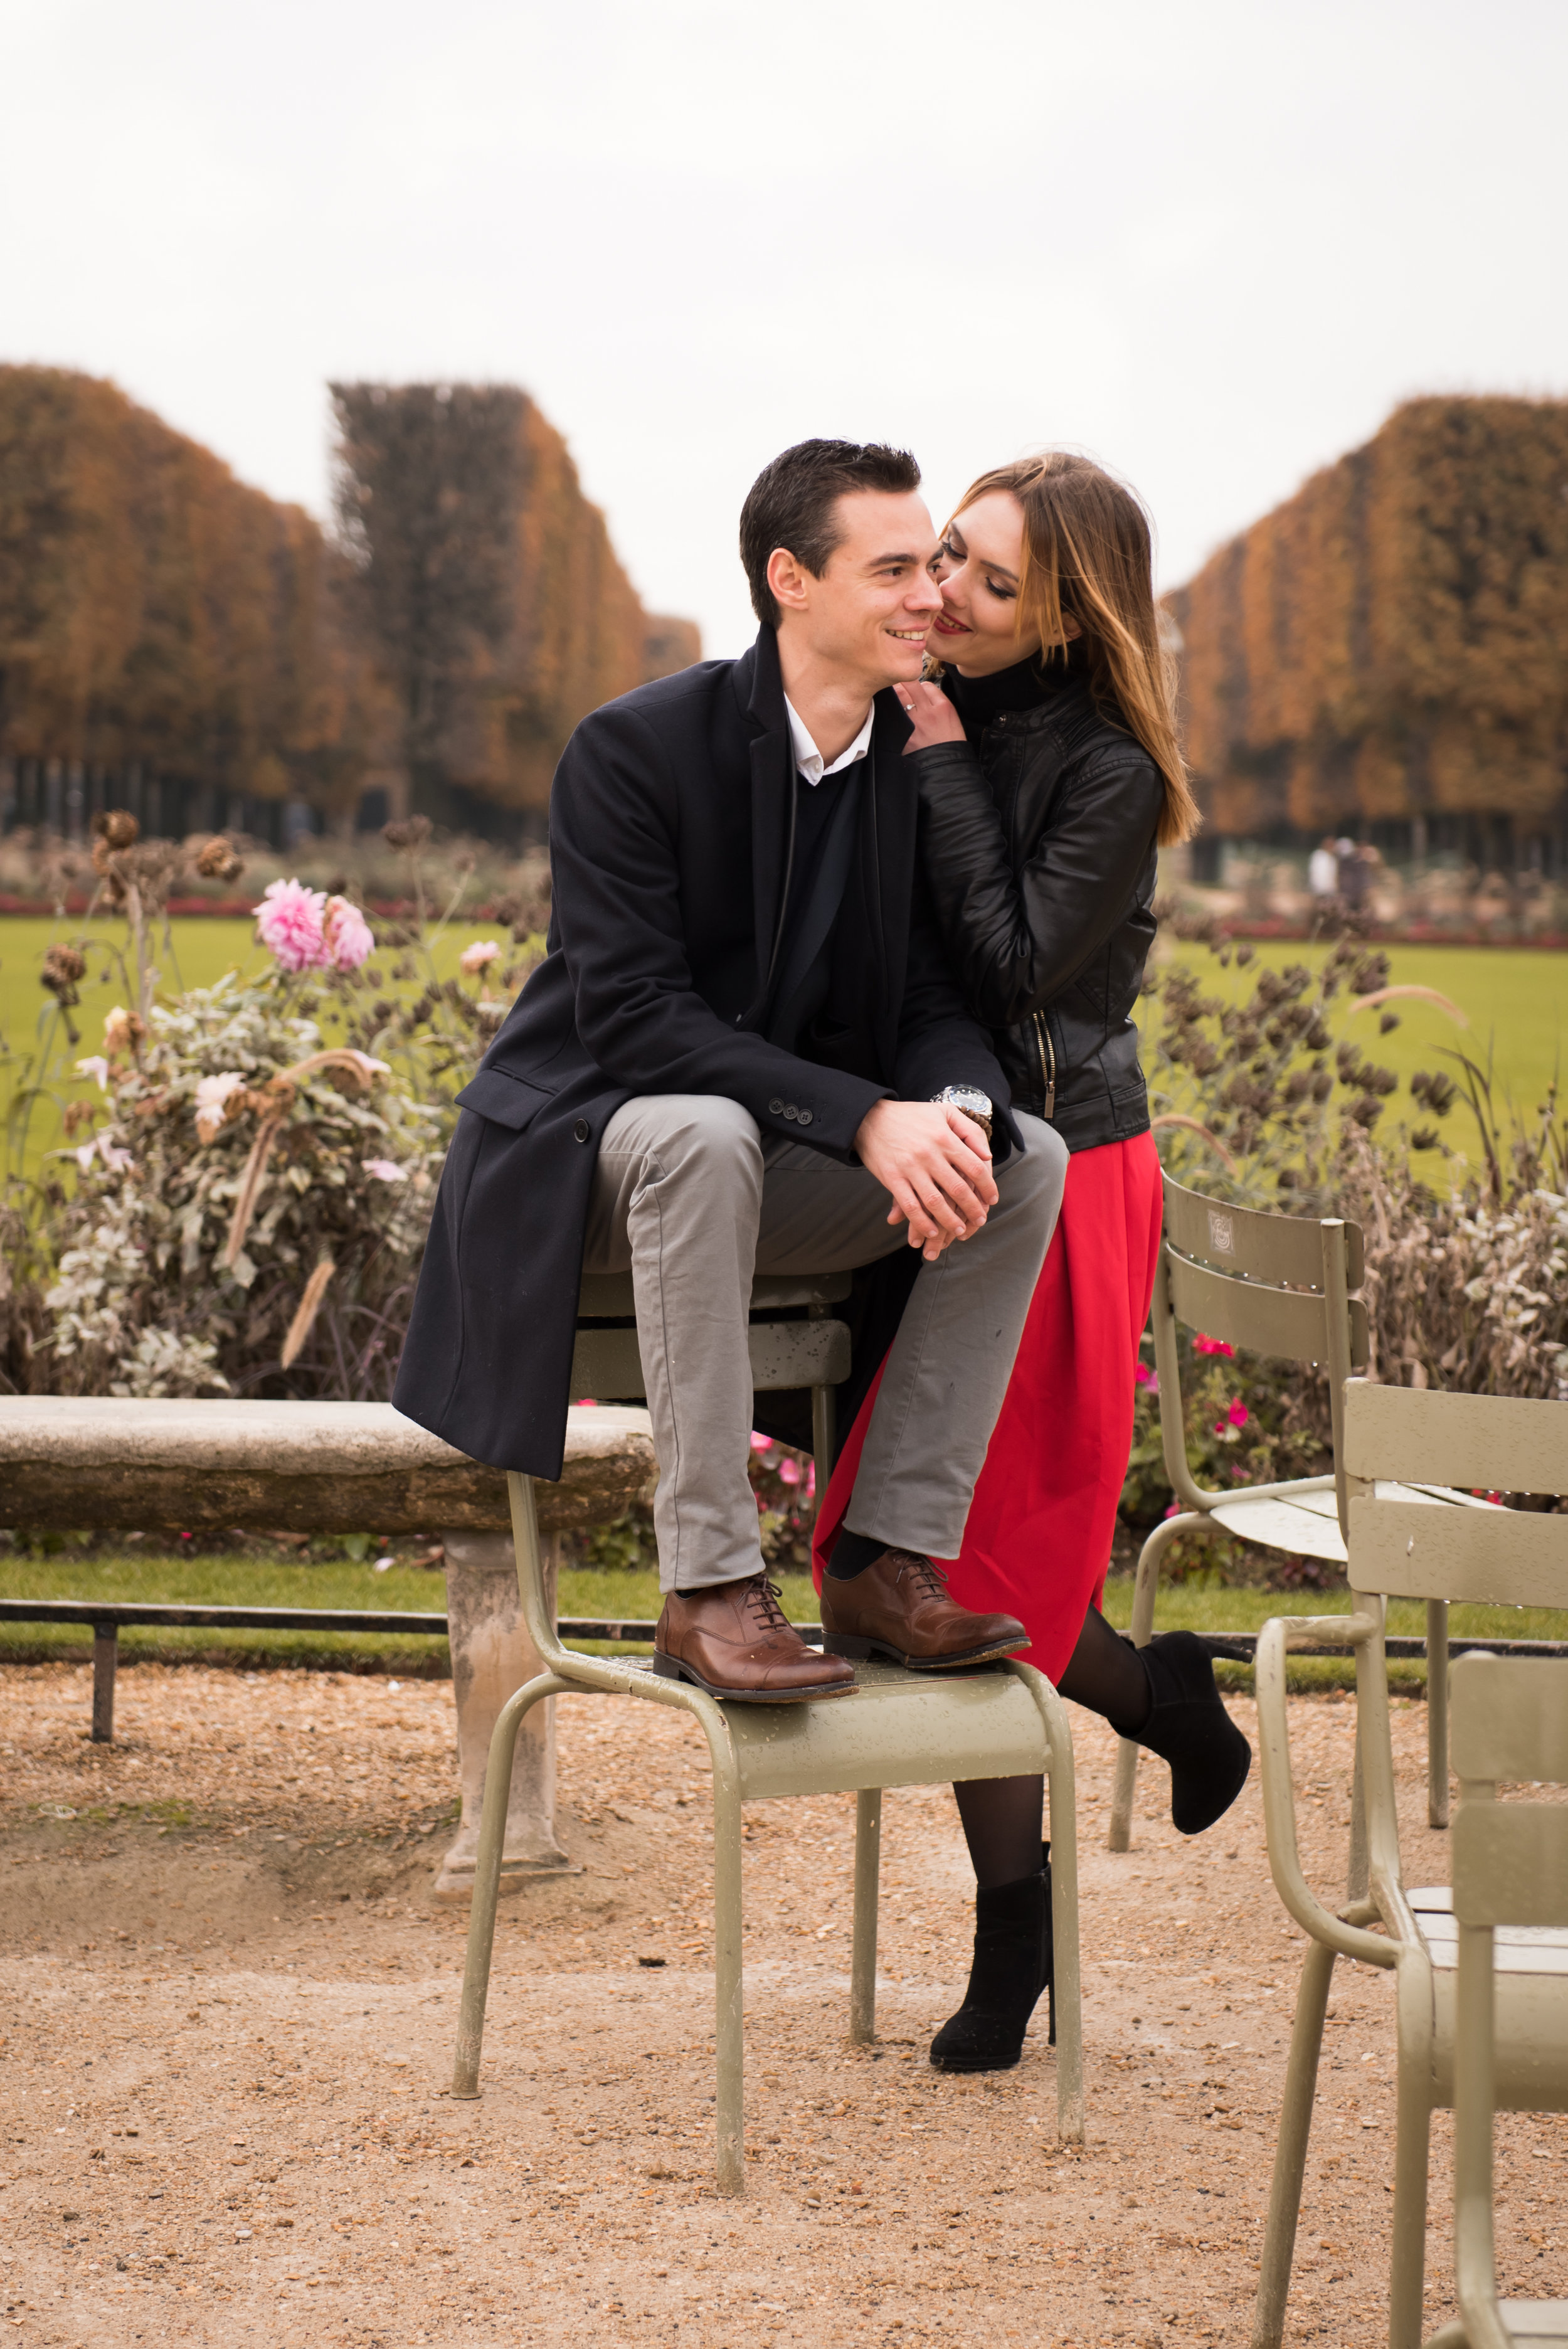 Paris engagement photo session in the autumn at Jardin du Luxembourg-36.jpg